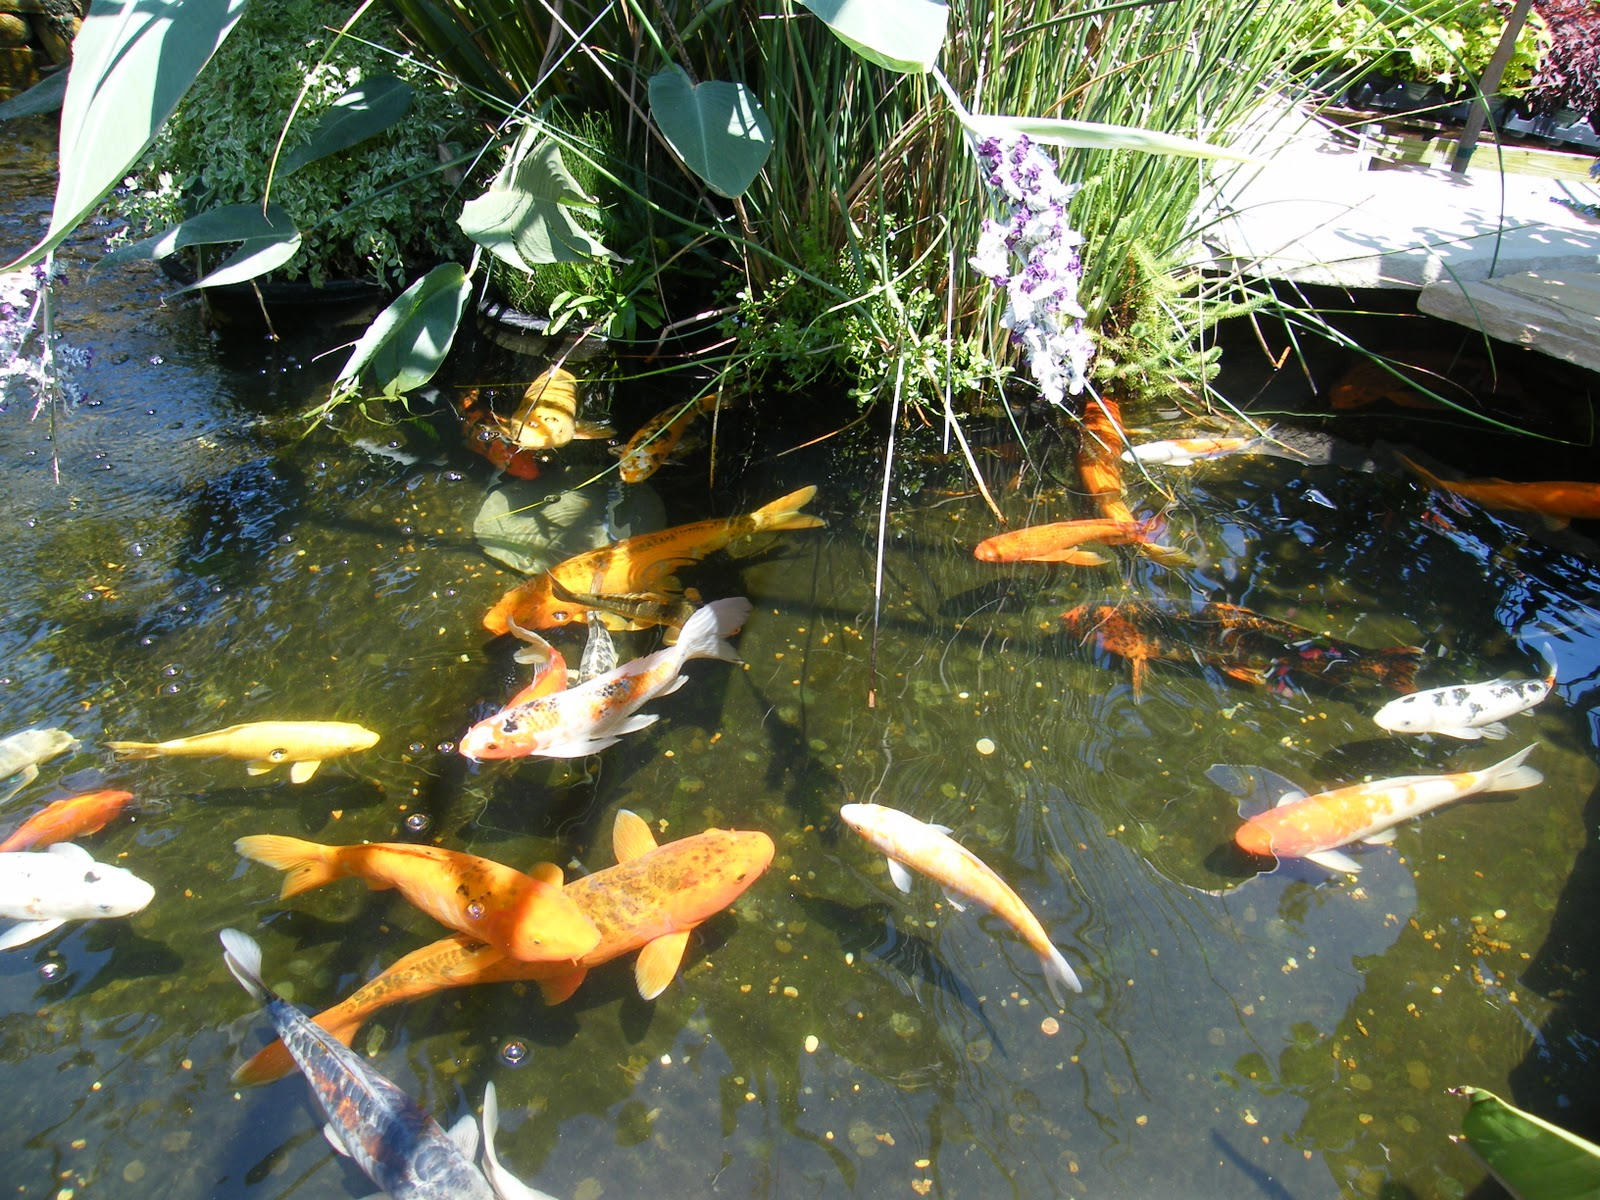 We Have A Huge Selection Of Water Garden Supplies. We Have Lots Of Plants  To Choose From And A Bunch Of Fish. Come Check Out What We Have For Your  Water ...